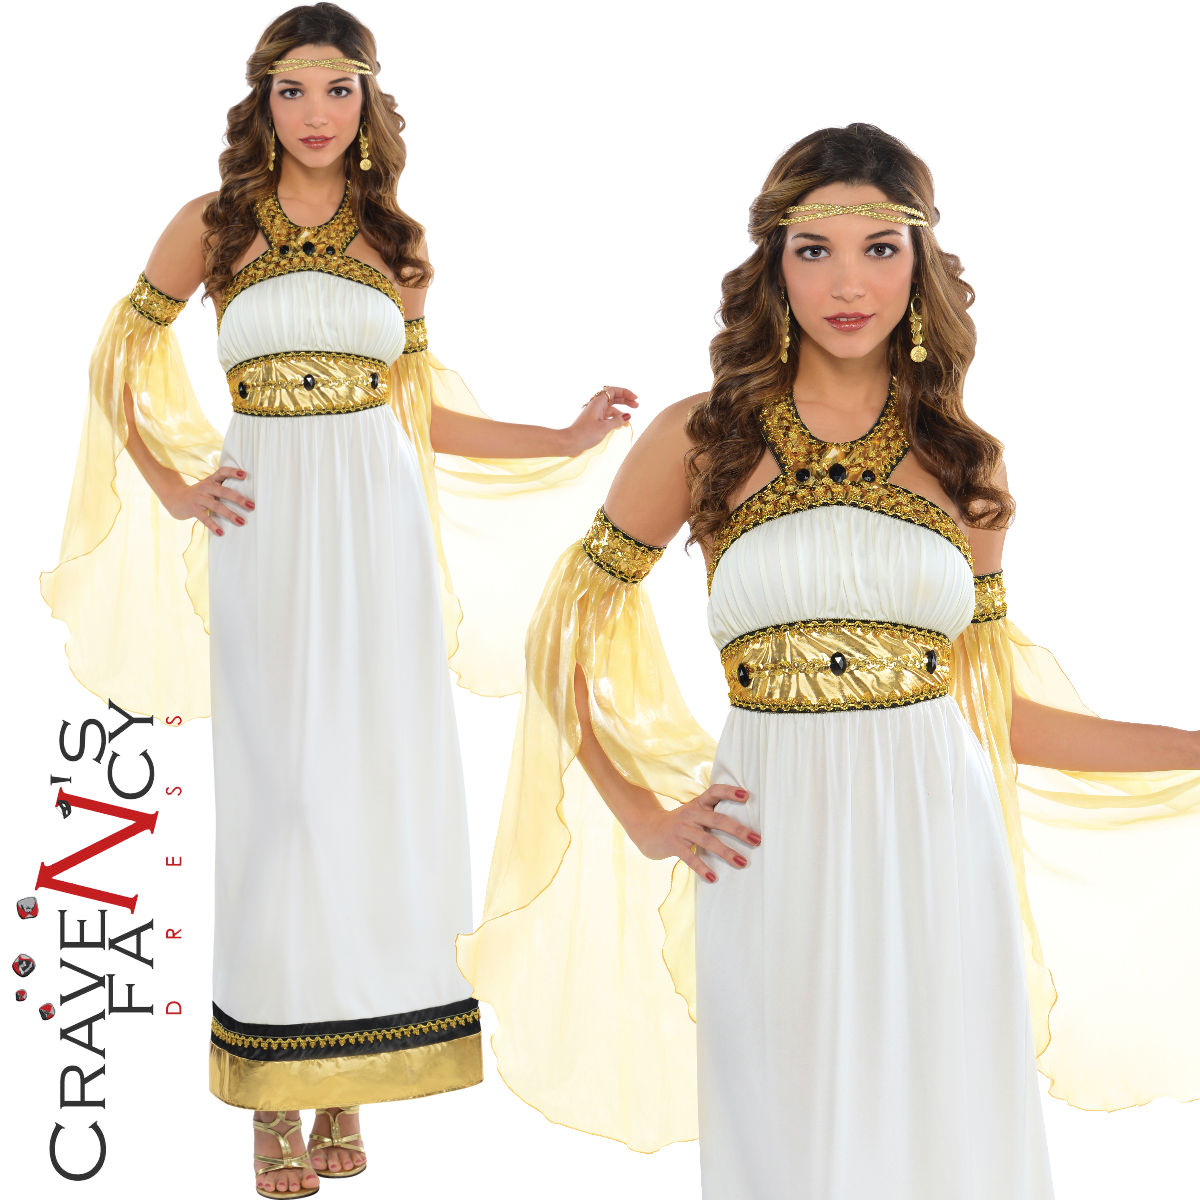 marvellous roman themed party outfits ideas